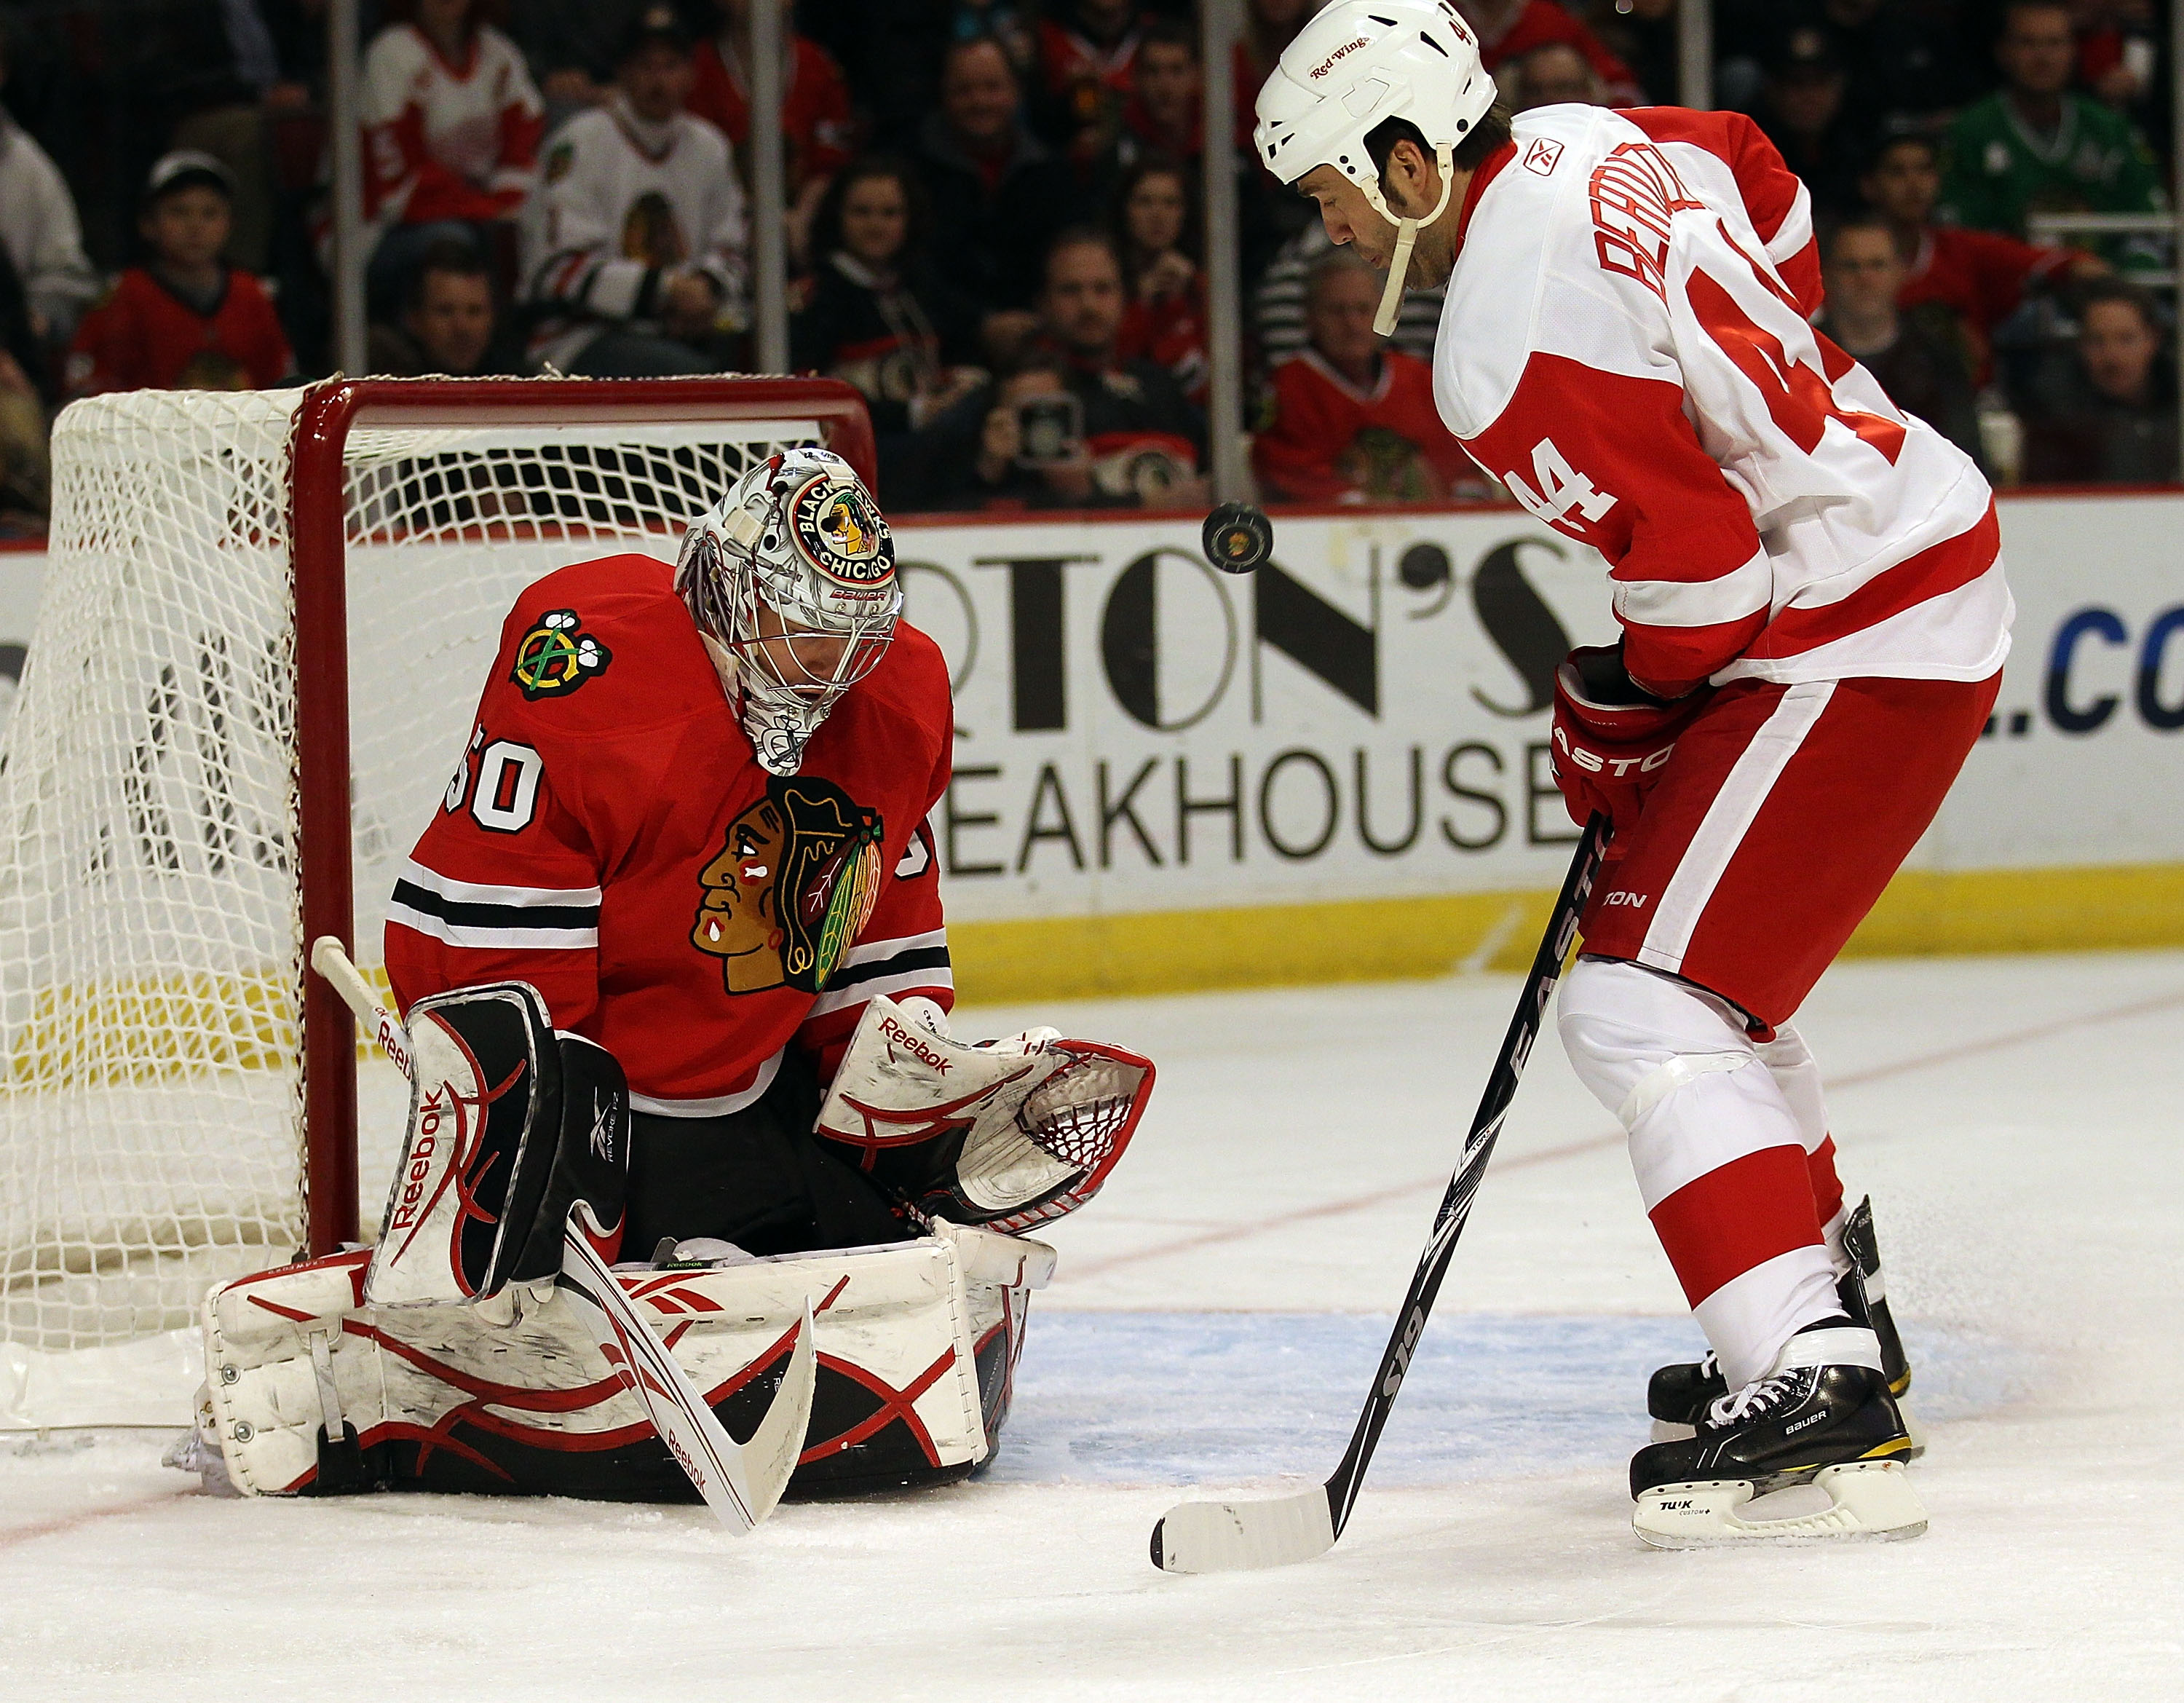 CHICAGO, IL - DECEMBER 17: Corey Crawford #50 of the Chicago Blackhawks makes a save and flips the puck in the air in front of Todd Bertuzzi #44 of the Detroit Red Wings at the United Center on December 17, 2010 in Chicago, Illinois. The Blackawks defeate